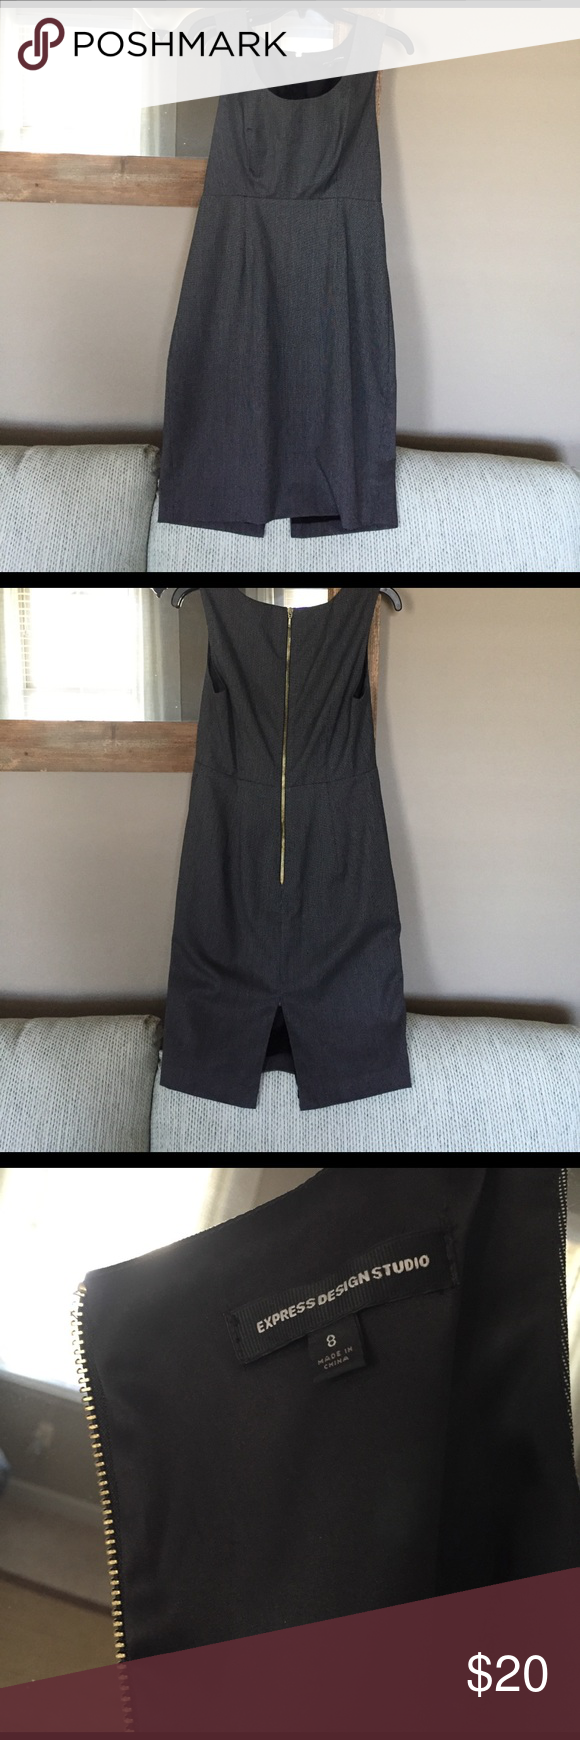 Express dress USED Express dress in a grey (black & white blend). This is a shorter/formfitting style- cute for work with tights & a jacket or going out to show off the gold zipper ❤️ great condition. I typically wear a 6 but this fit me. Express Dresses